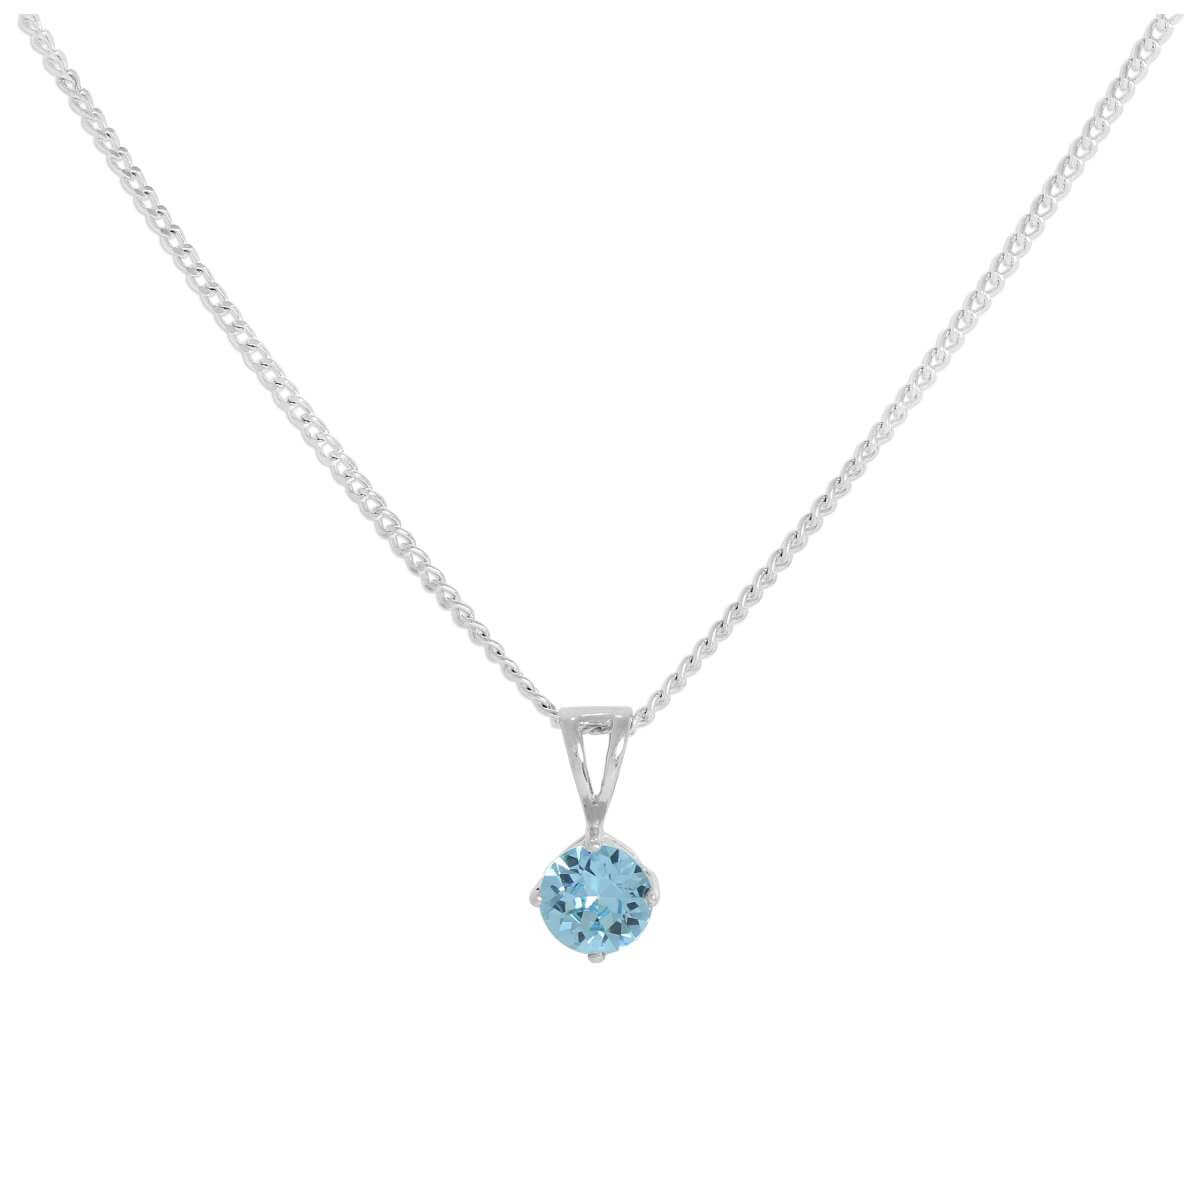 Sterling Silver & Aquamarine Crystal Made with Swarovski Elements March Birthstone Pendant Necklace 16 - 24 Inches